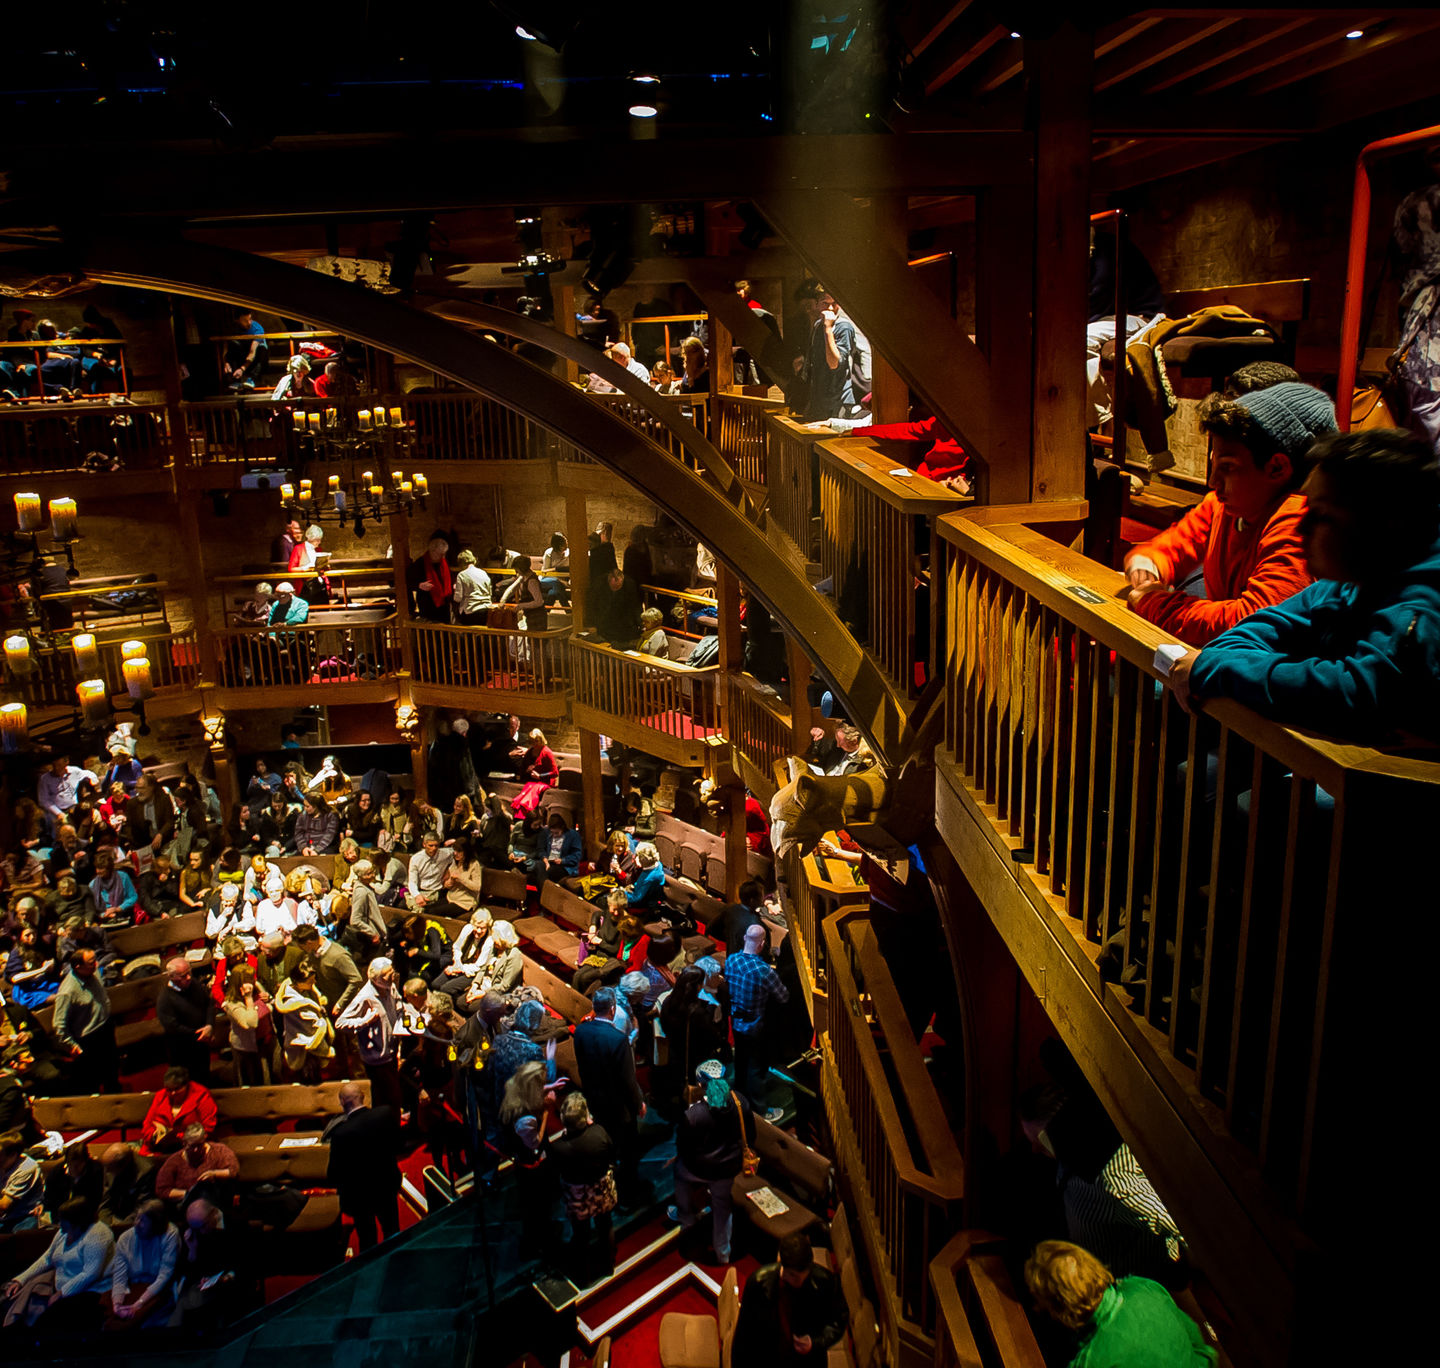 People in the Royal Shakespeare Theatre